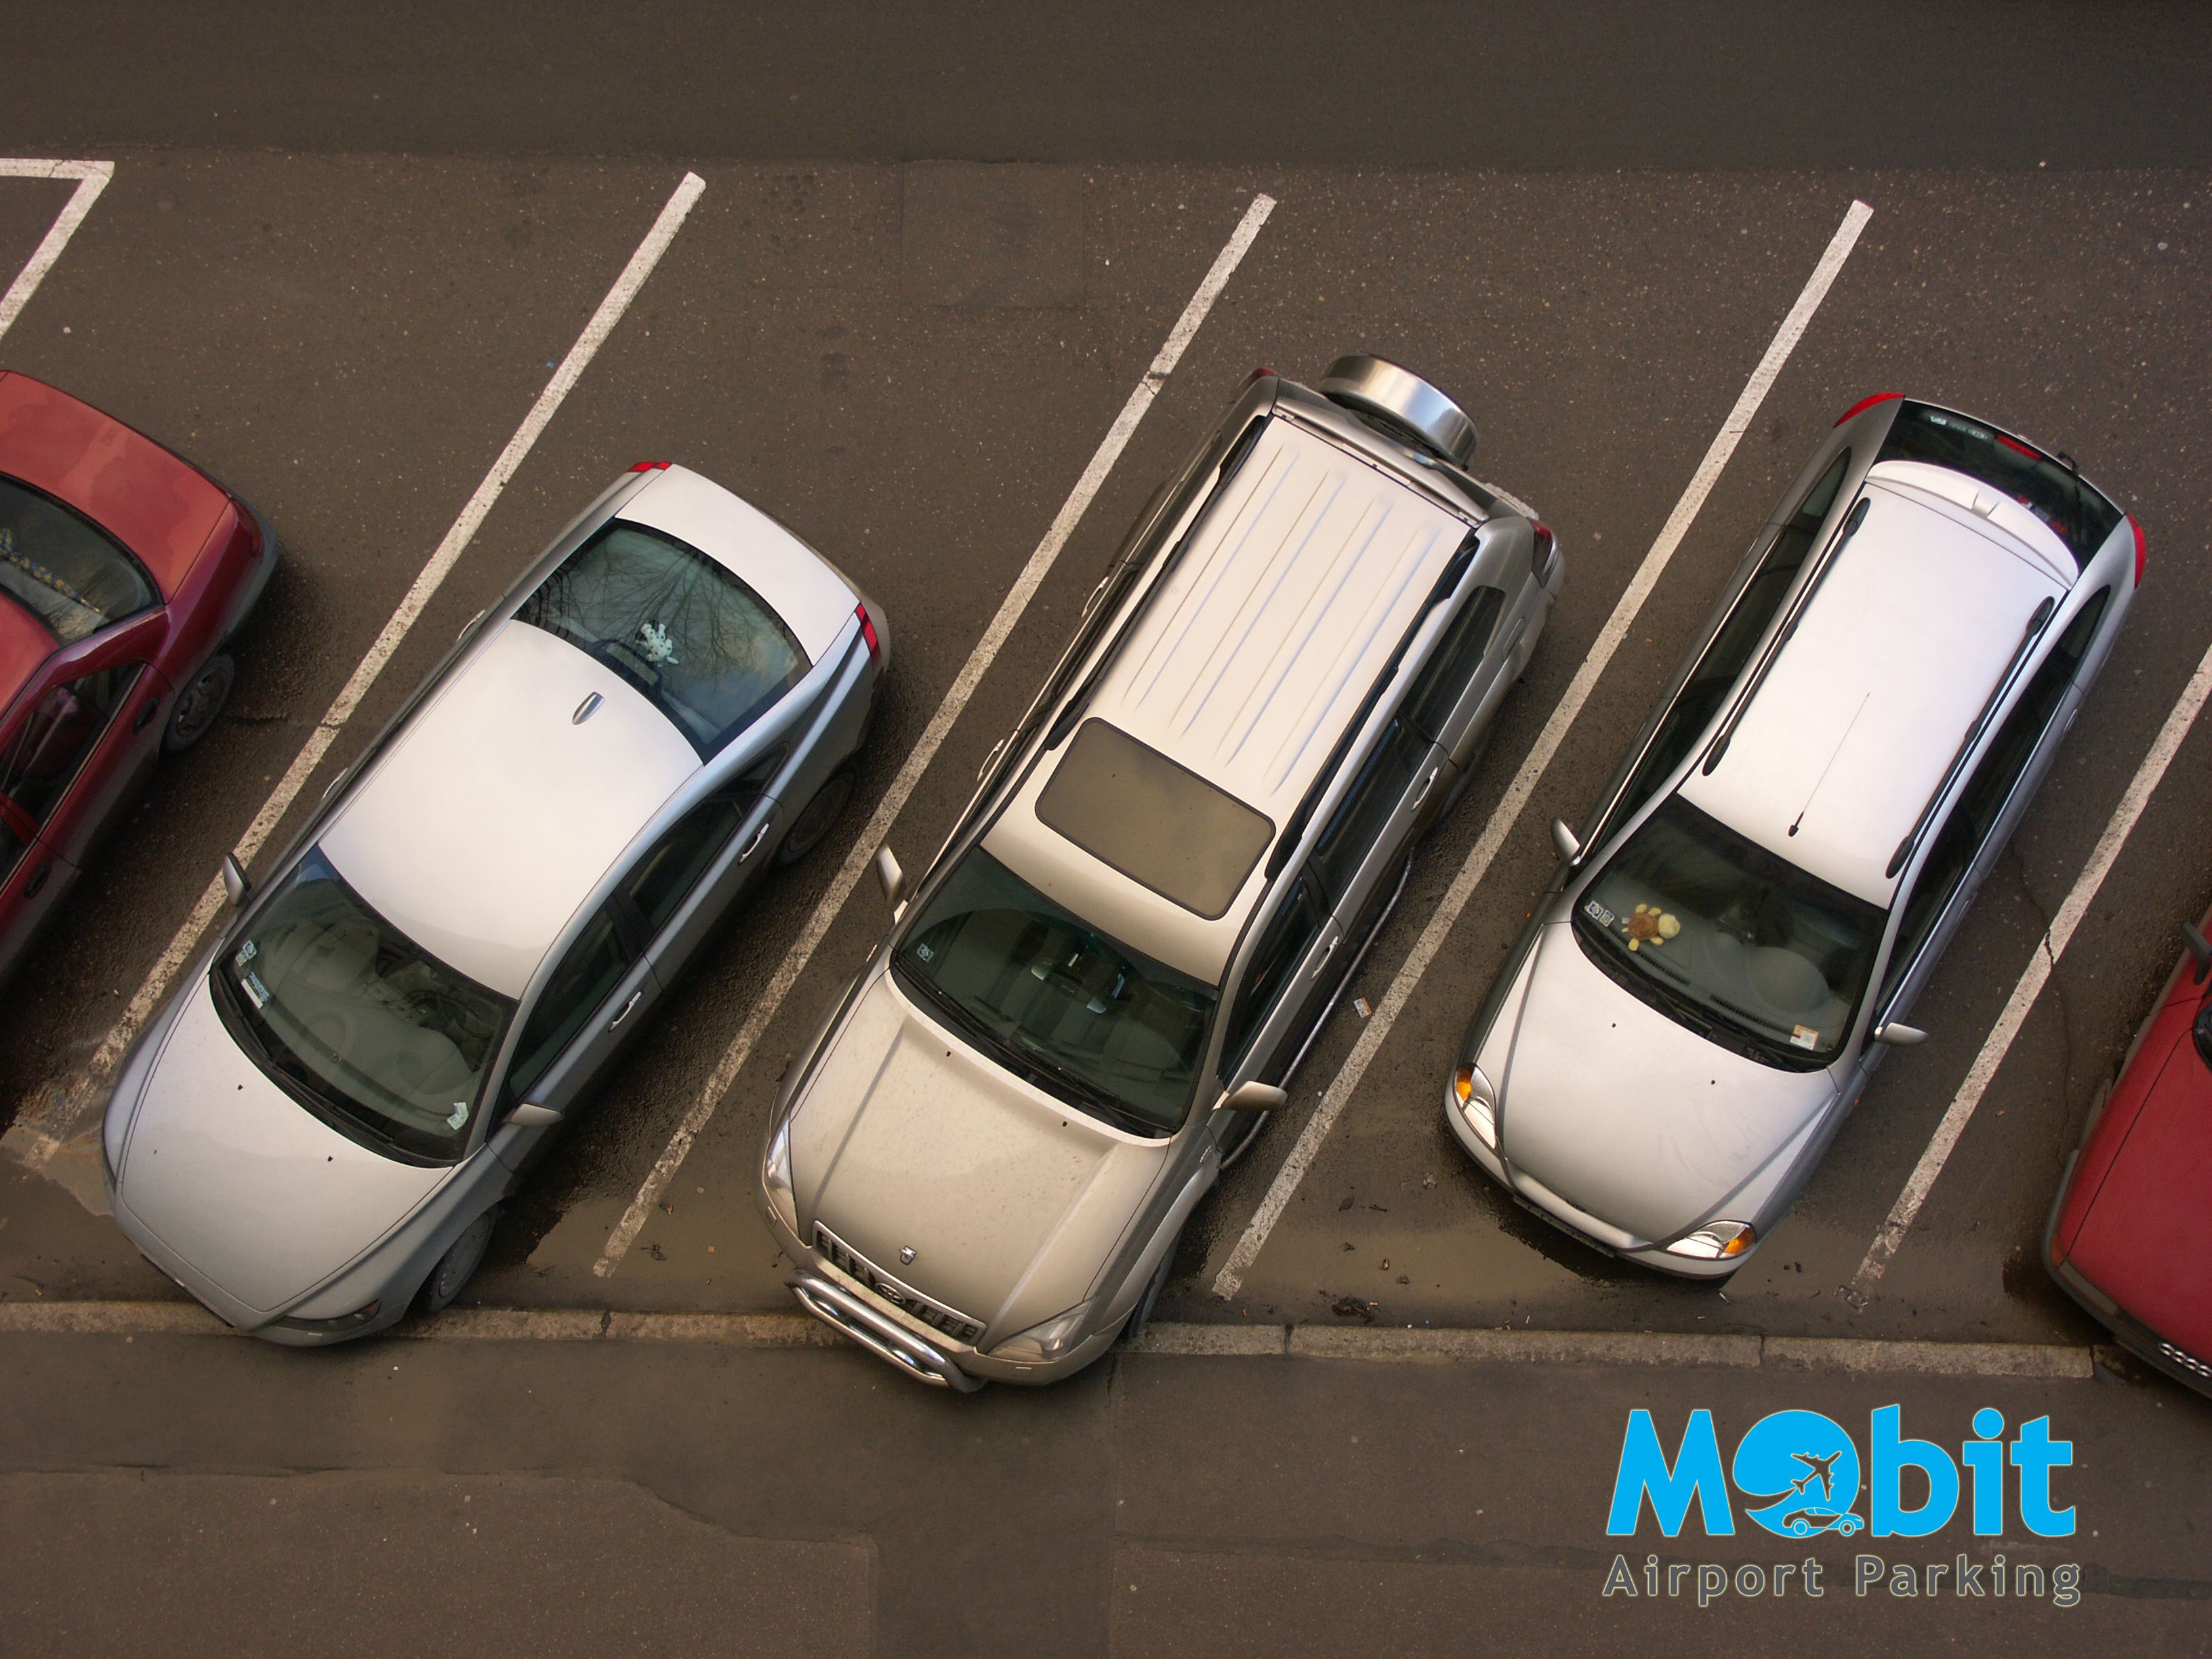 Book the right car parking at best rates via mobit airport book the right car parking at best rates via mobit kristyandbryce Gallery